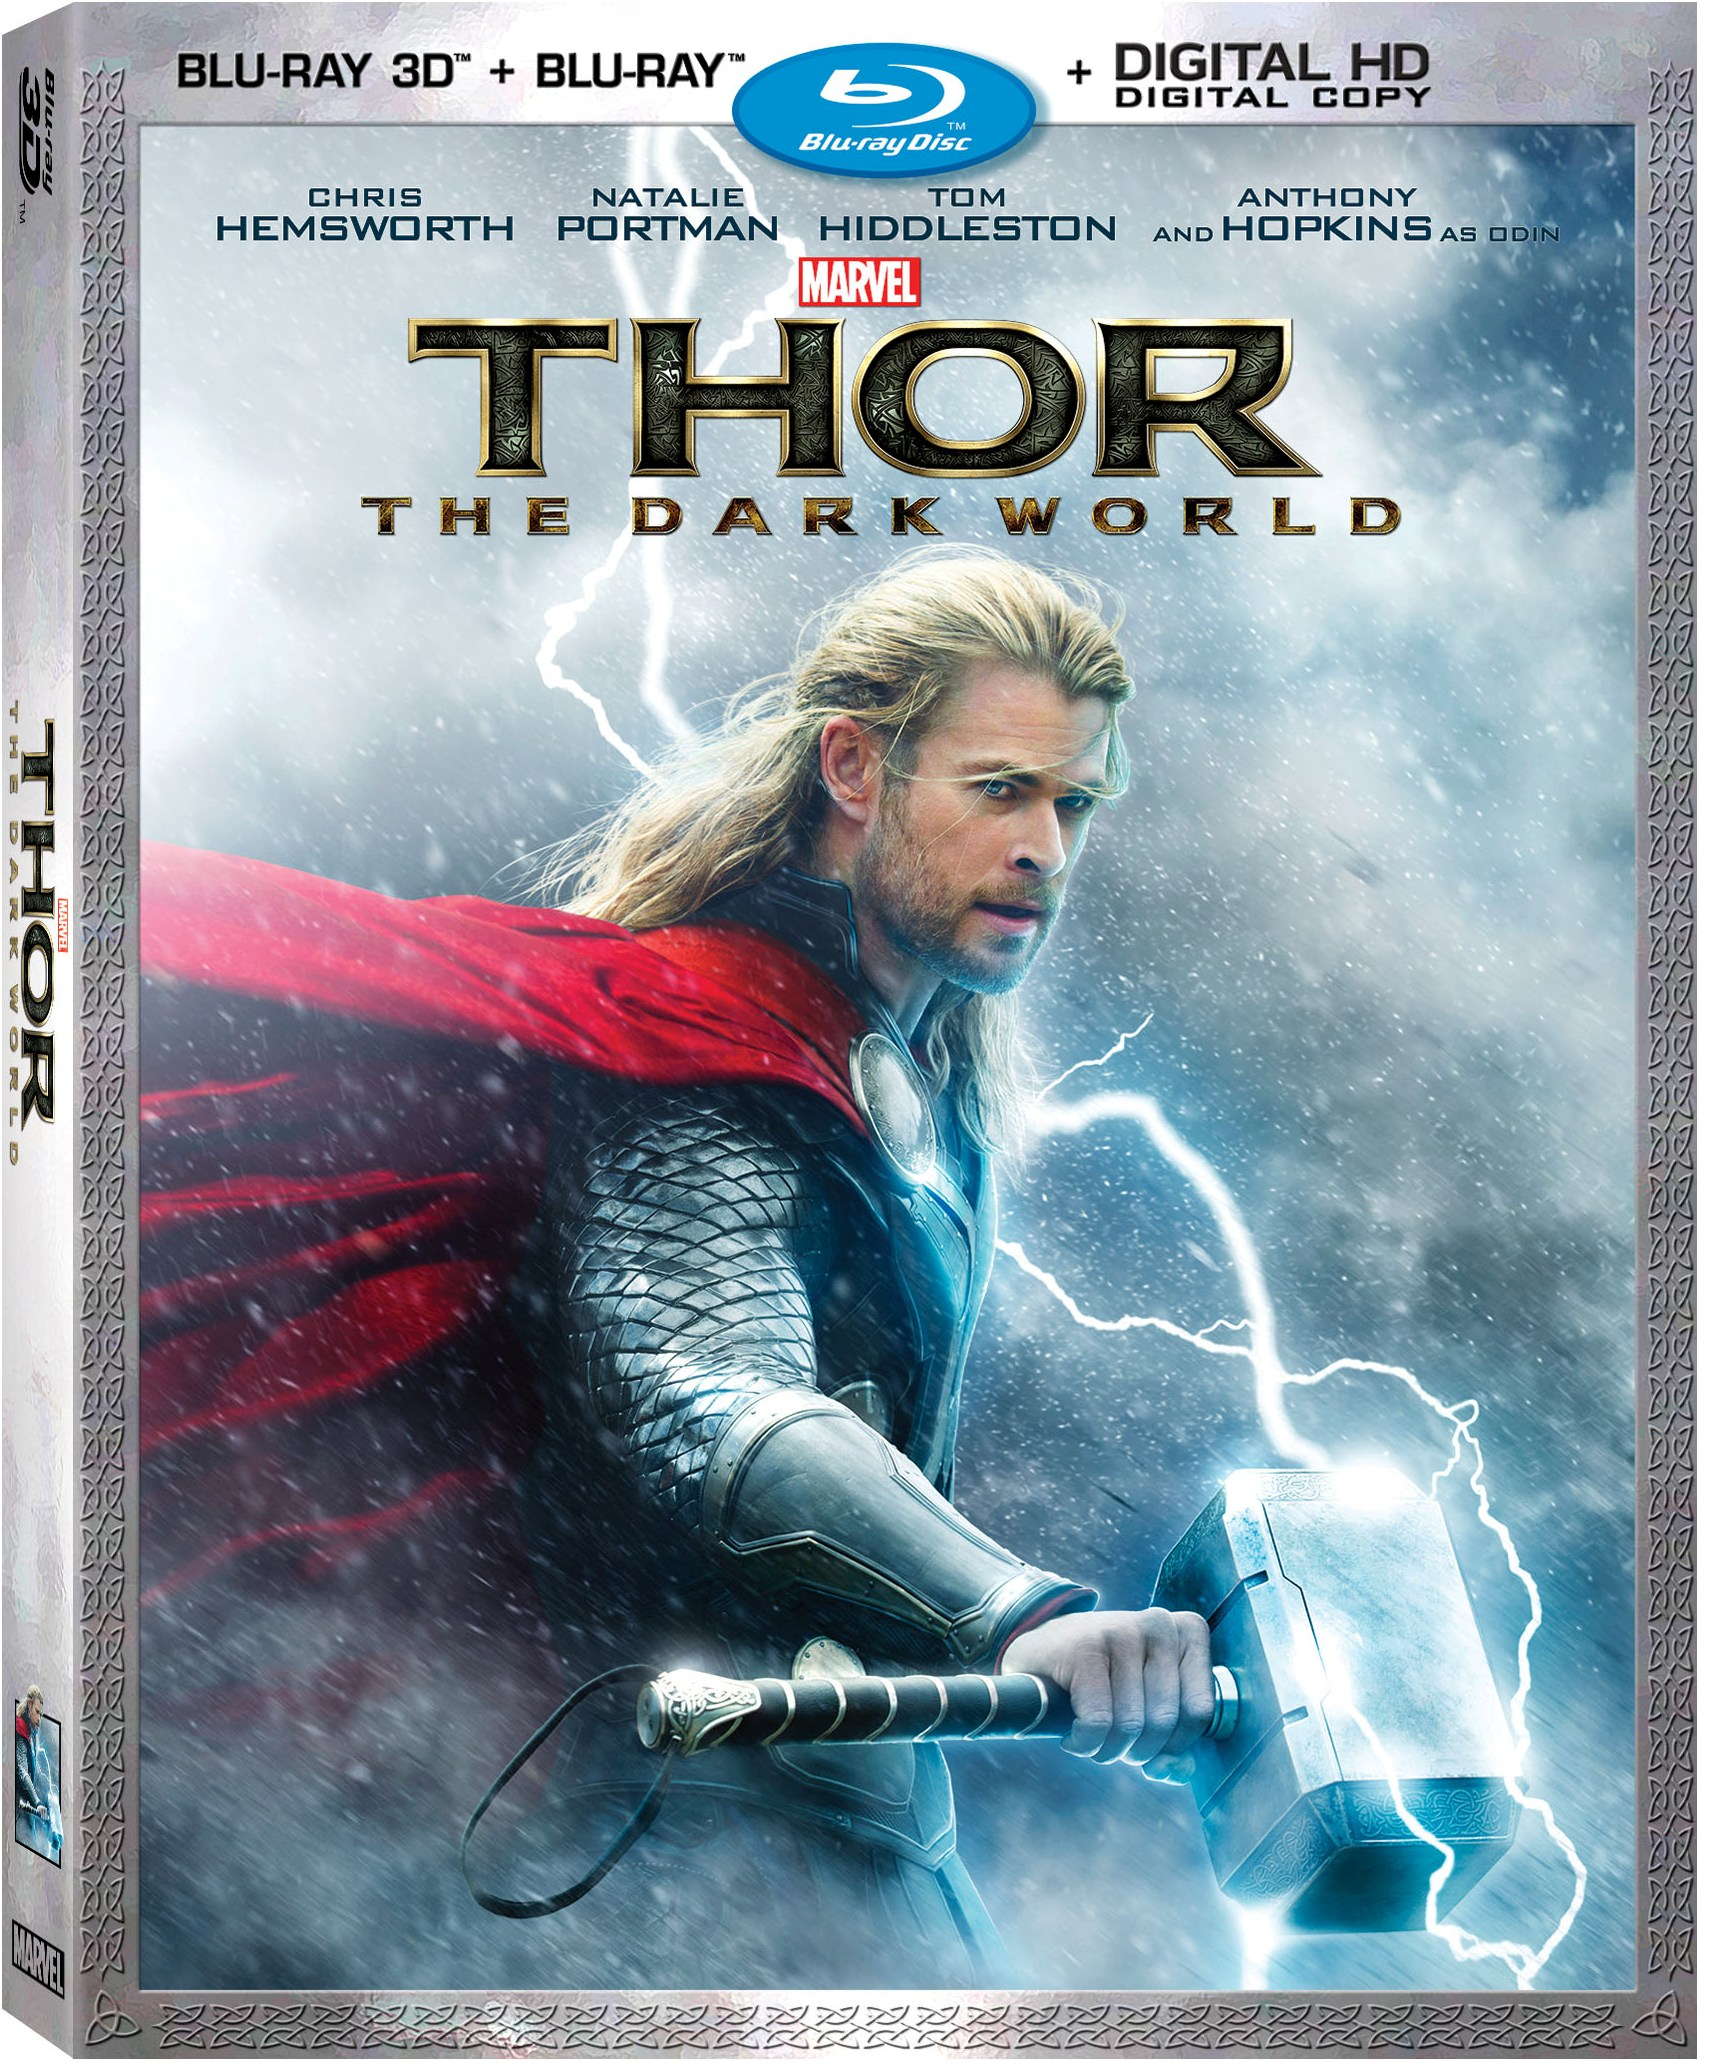 marvel's thor: the dark world comes to blu-ray and dvd this tuesday